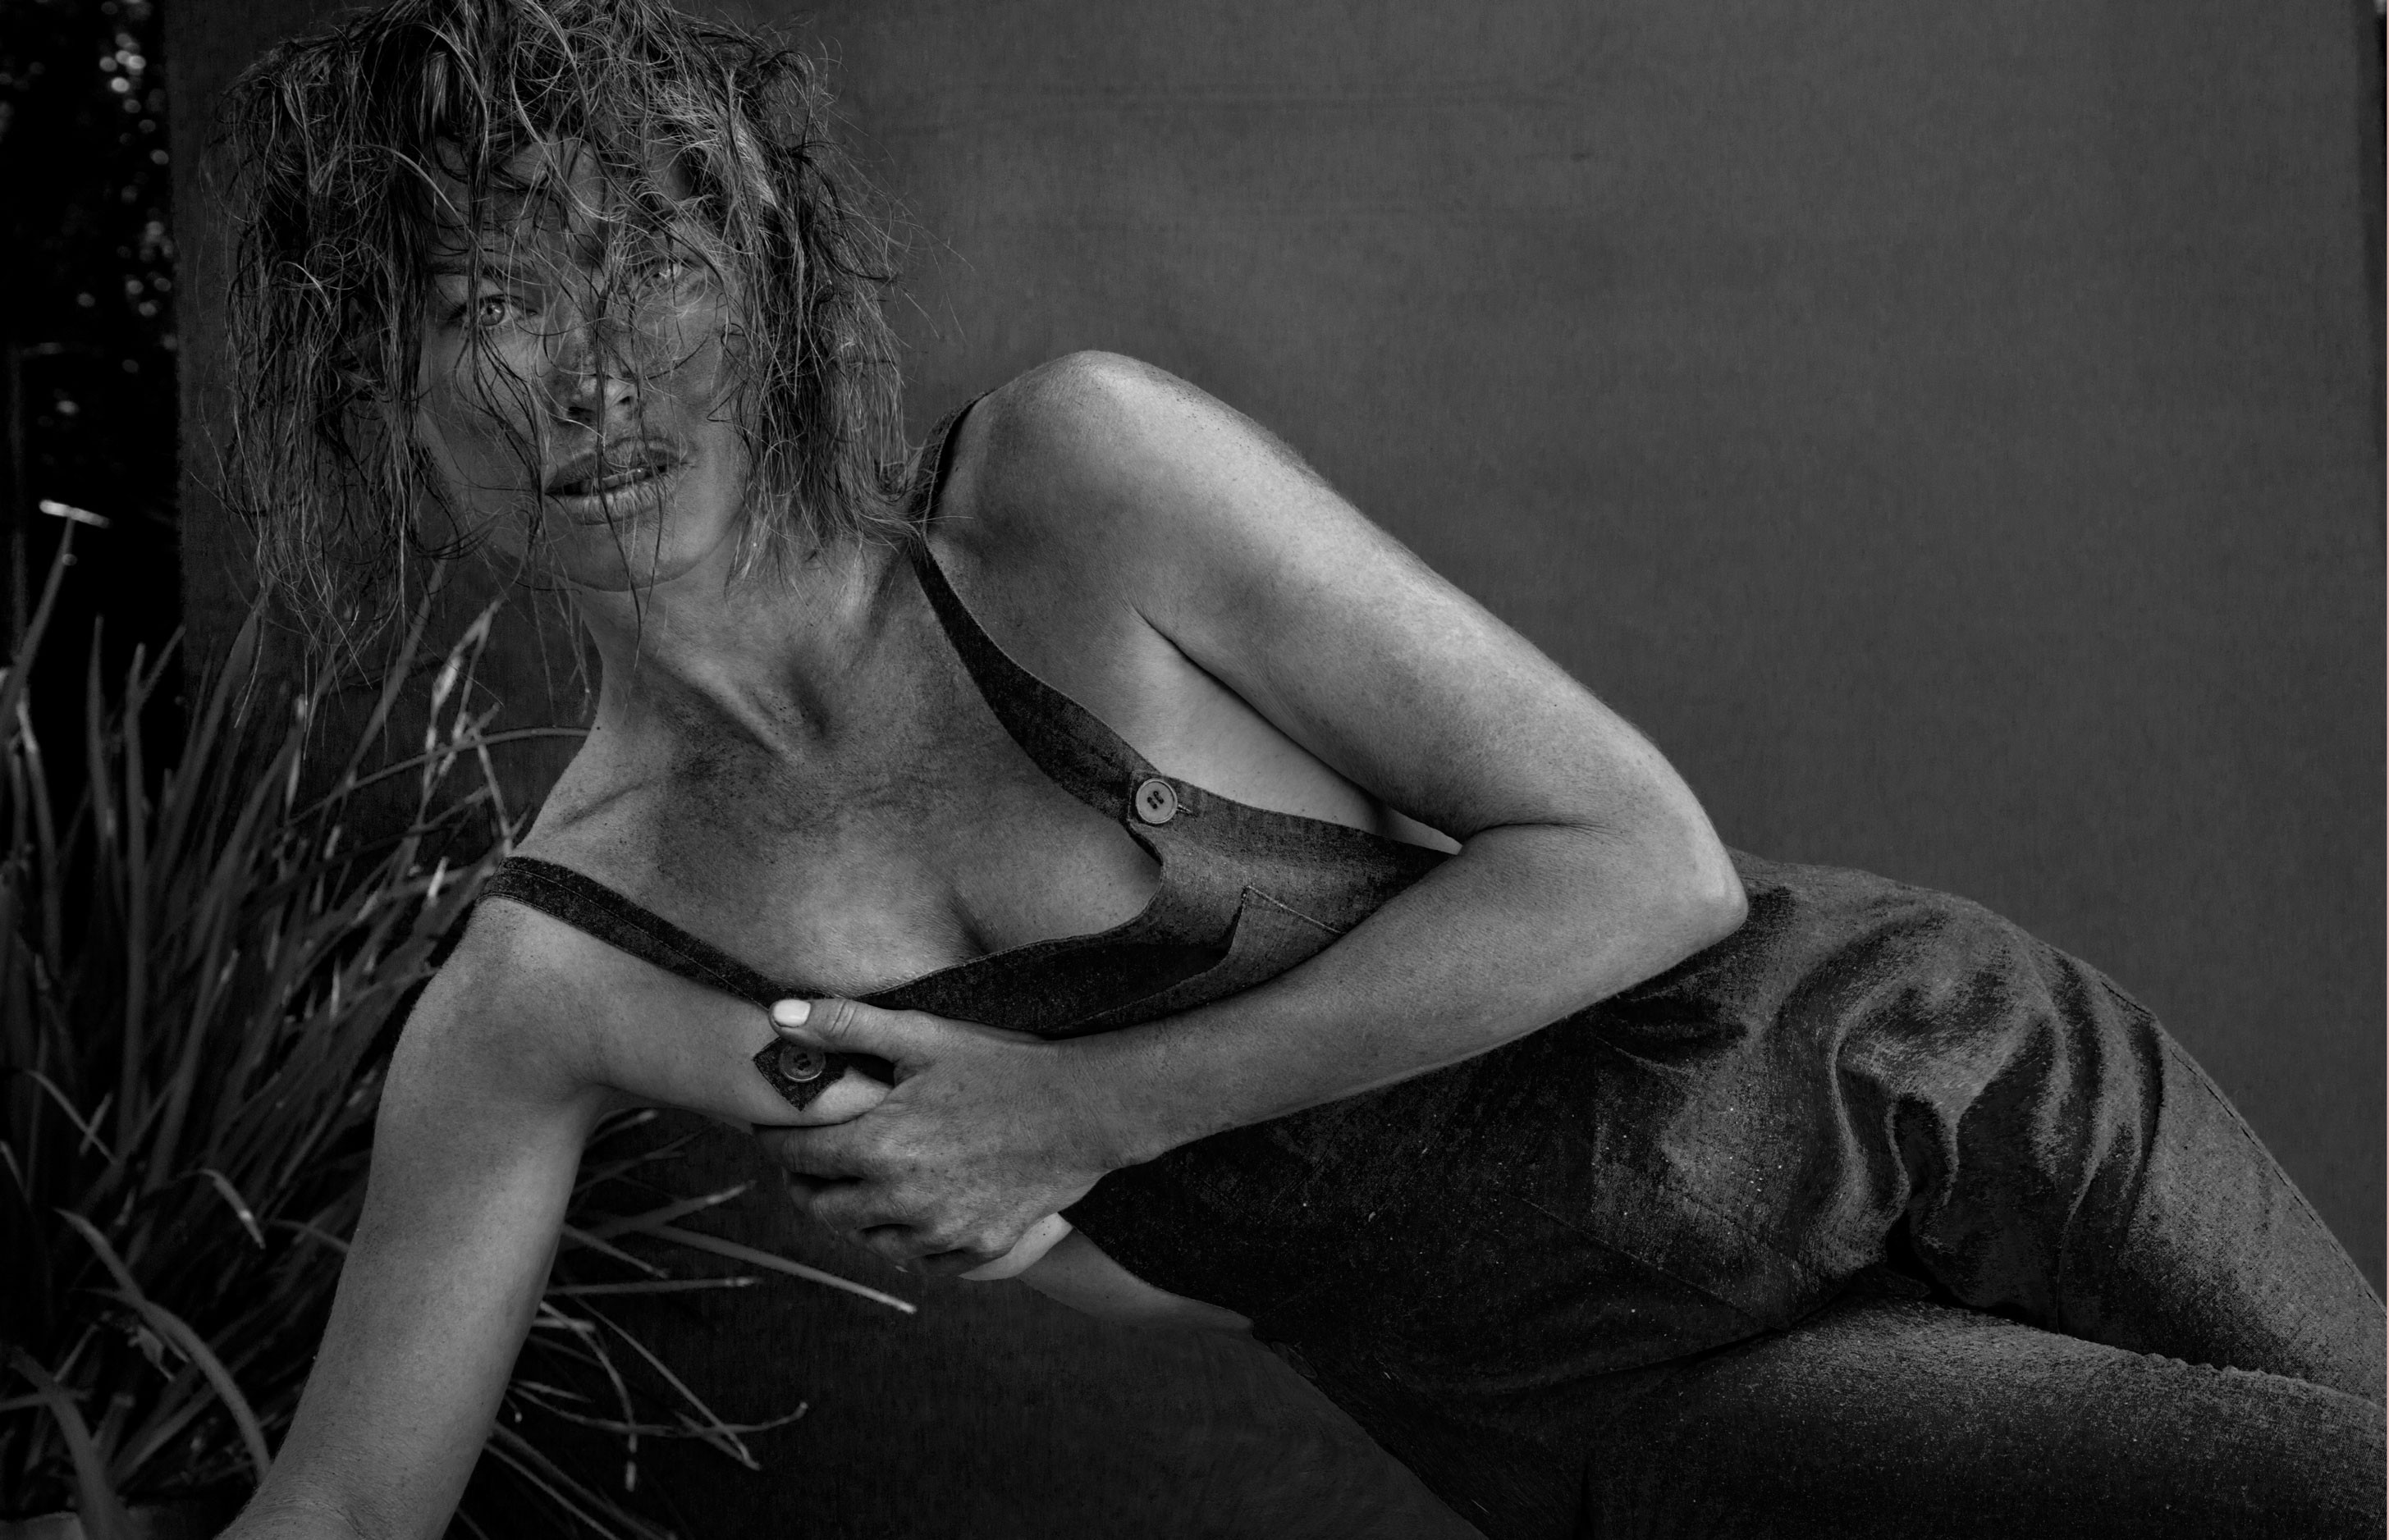 Carre Otis Topless 5 TheFappening.nu